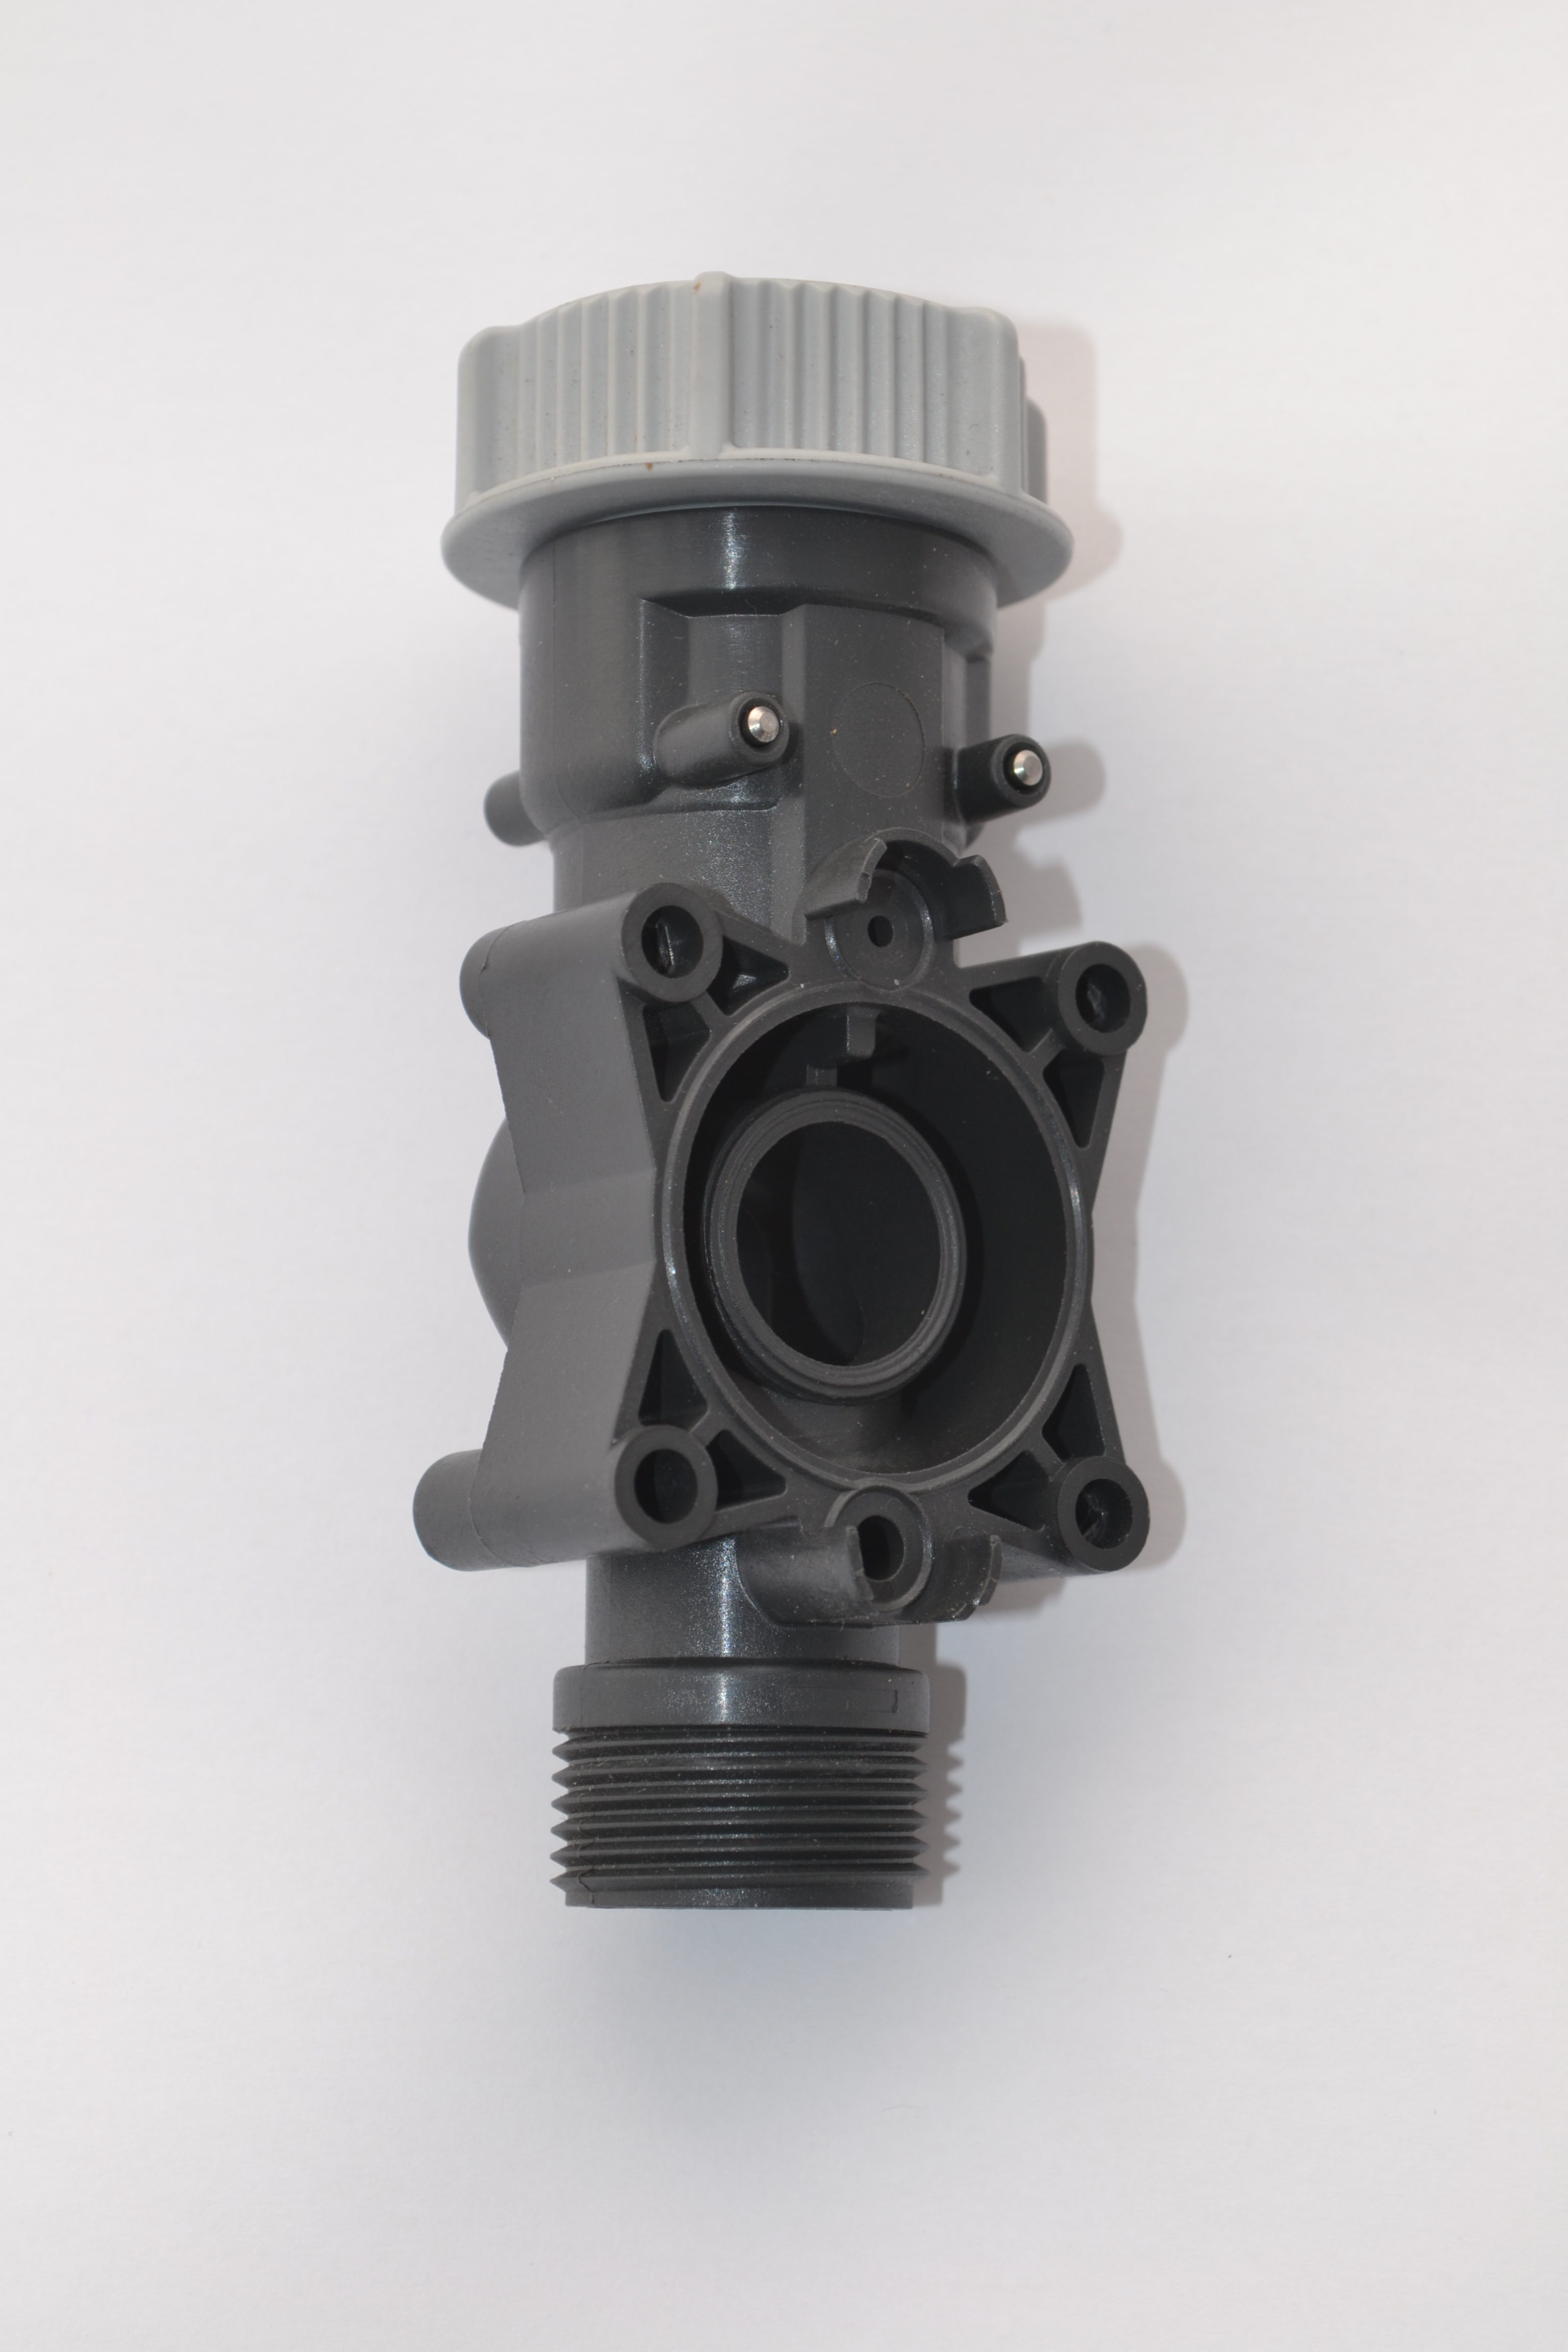 Replacement Valve Body For 1800 Gardena Timers